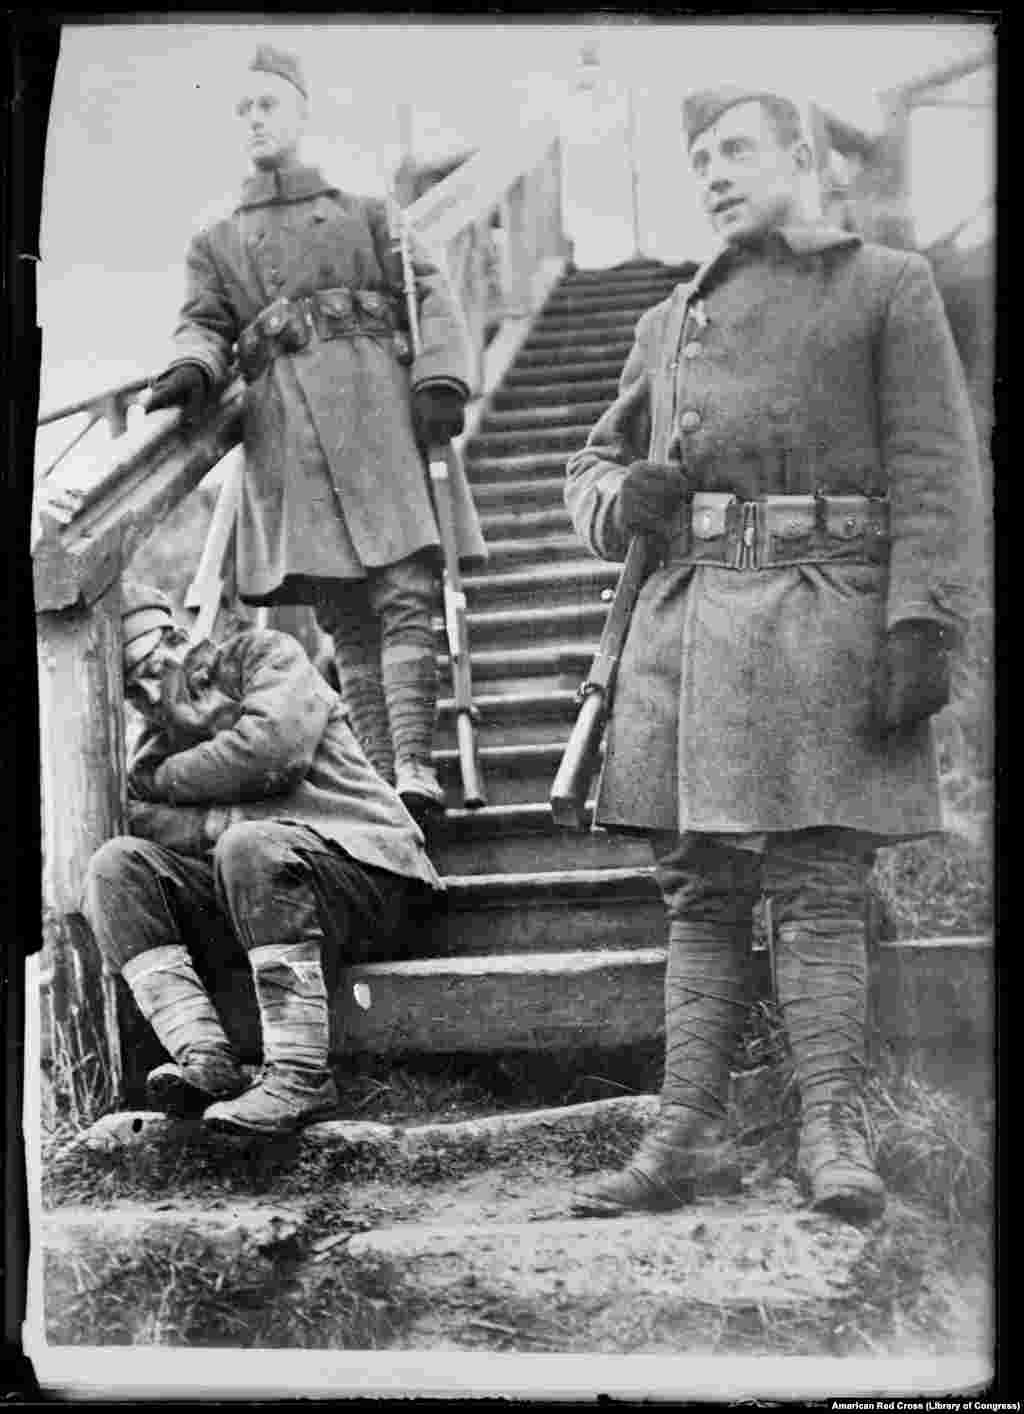 """A Russian peasant """"exhausted from starvation"""" on the steps of the U.S. headquarters in Arkhangelsk in 1918 or 1919. While first adopting a """"wait and see"""" approach when the Bolsheviks seized power, the U.S. relationship with the new communist government soon soured and U.S. troops joined Britain and other World War I allies to back the White Army."""